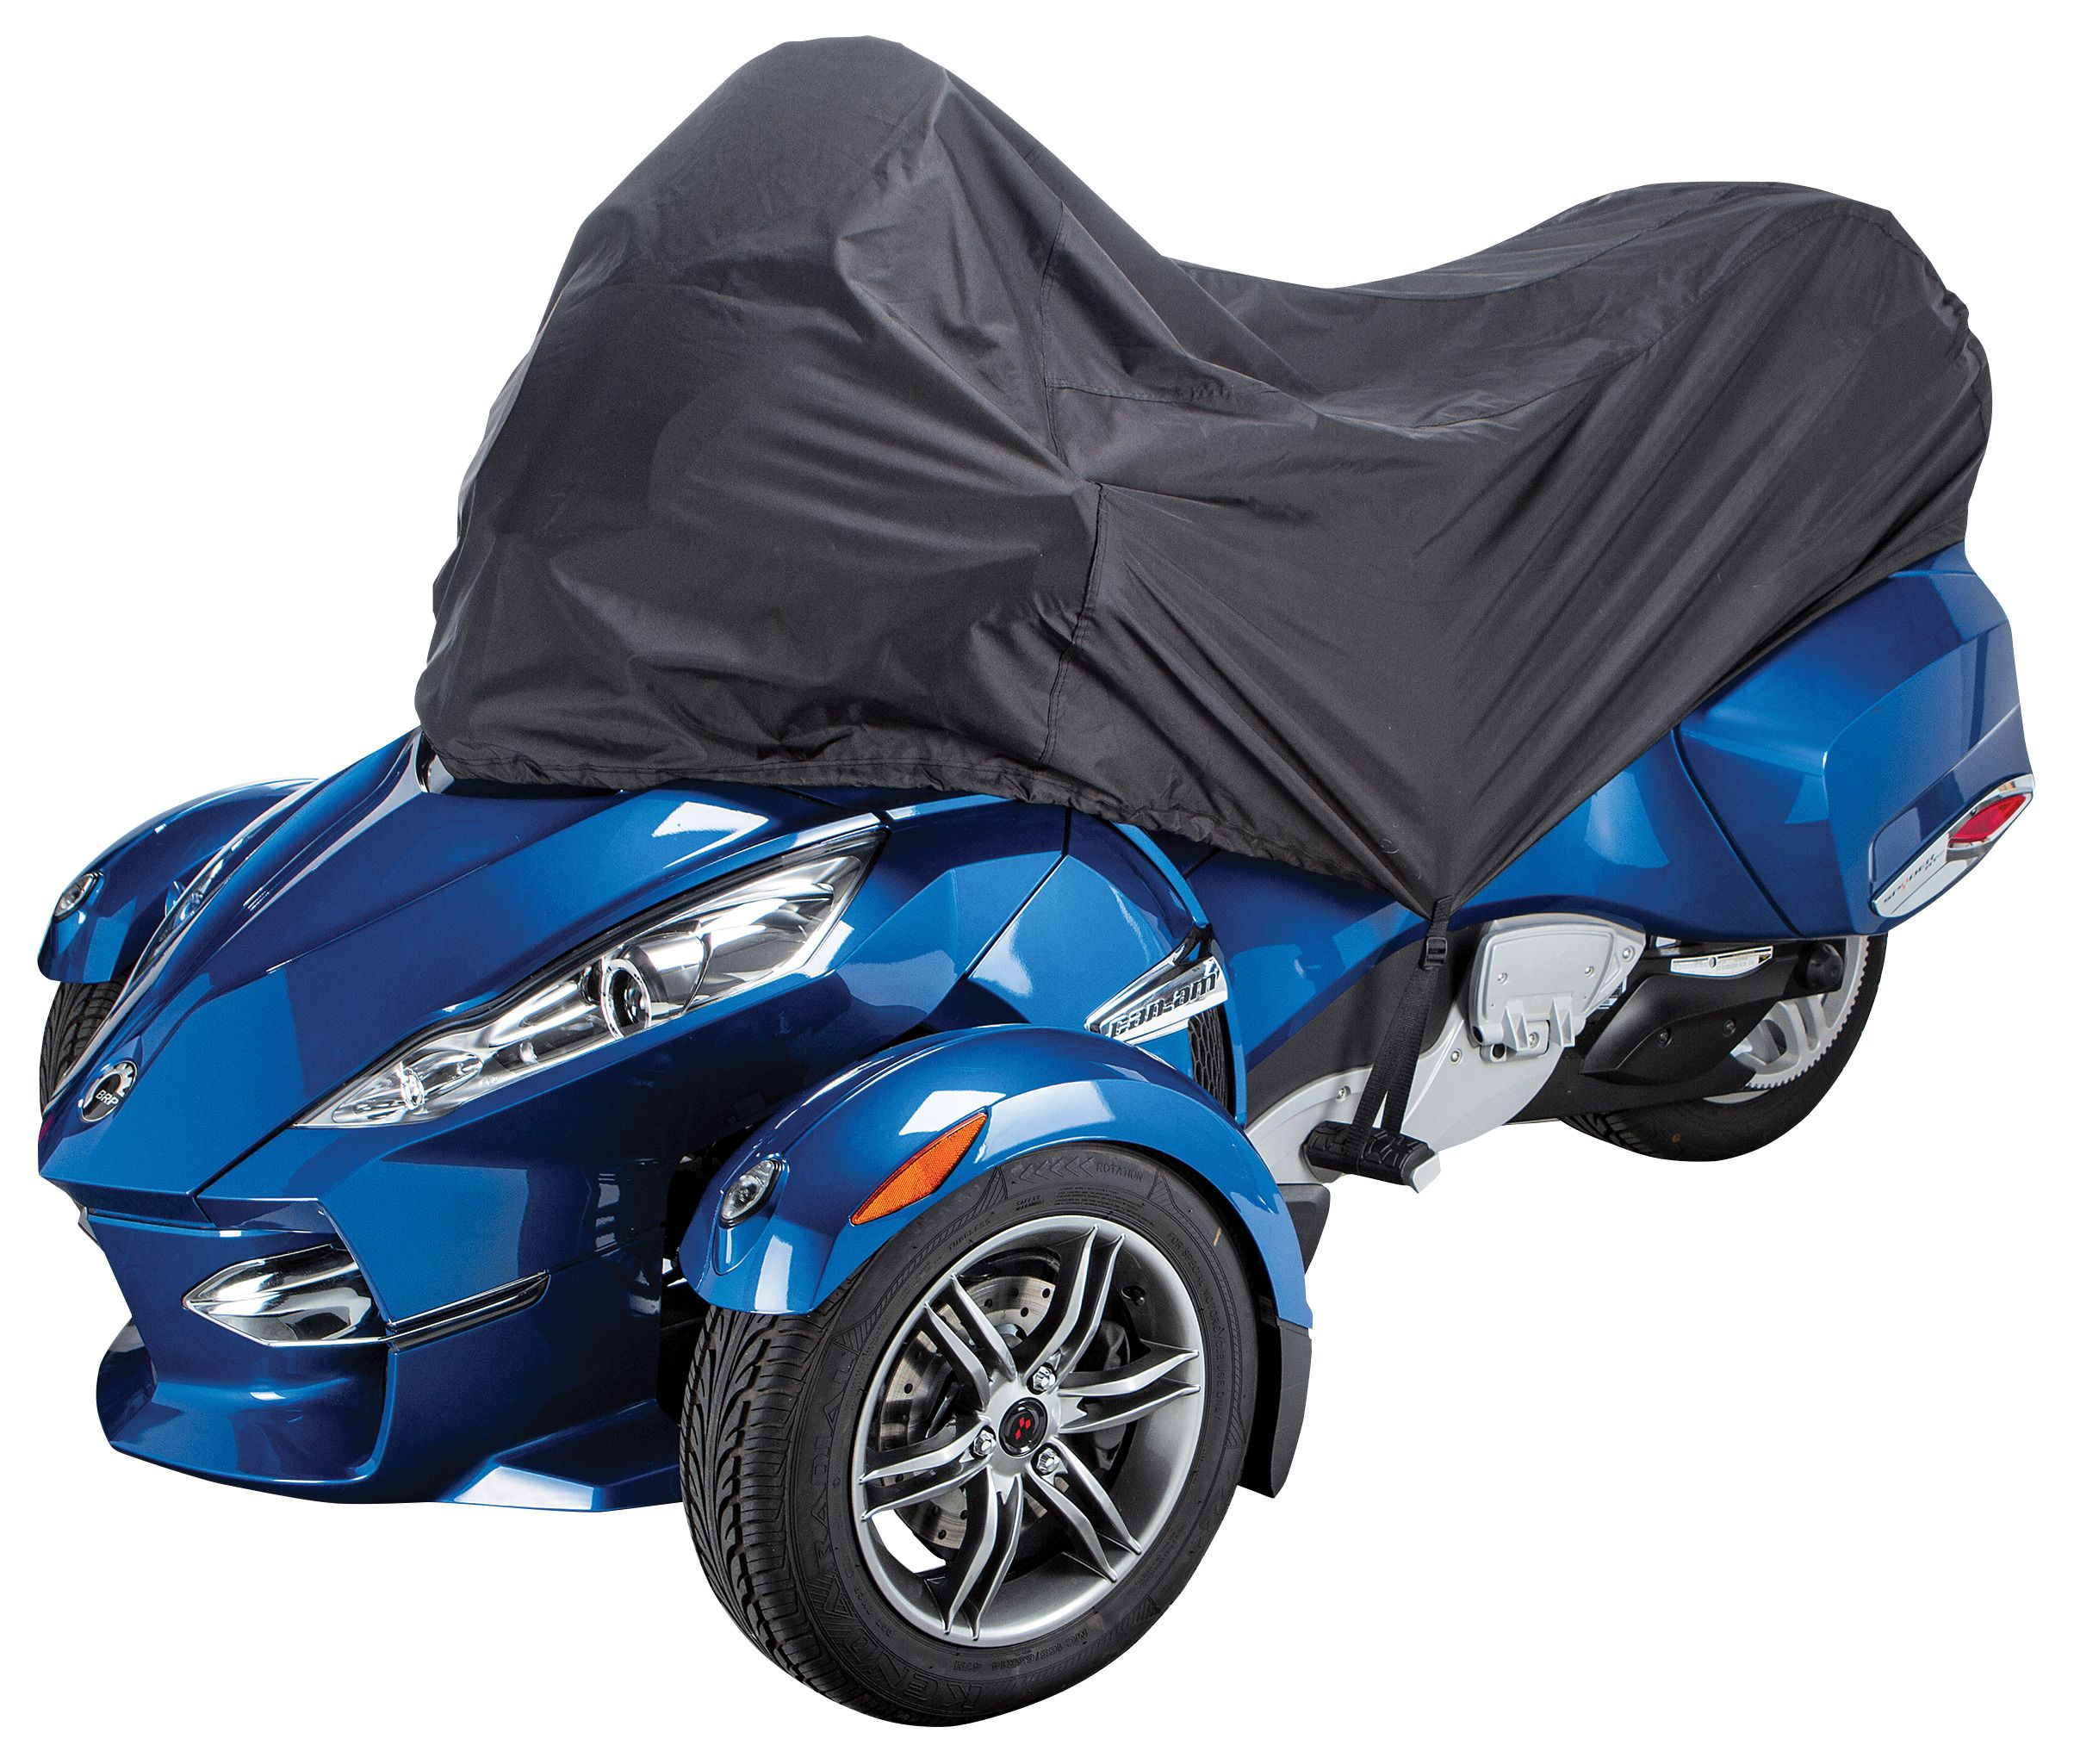 Tour Master Select Can Am Spyder Rt Half Motorcycle Cover